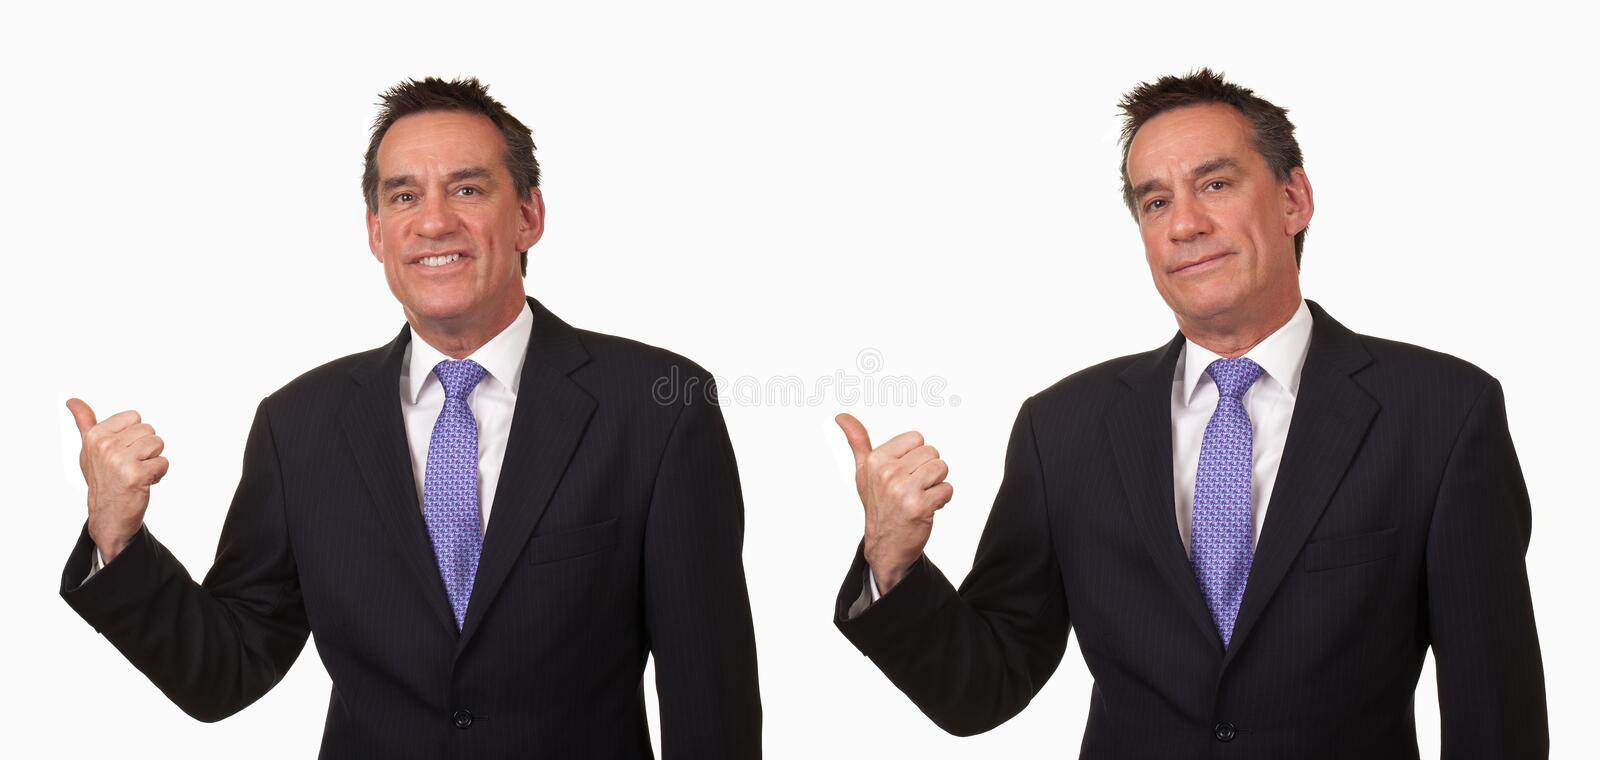 Download Angry Business Man In Suit Gesturing Get Out Stock Photo - Image: 19414138